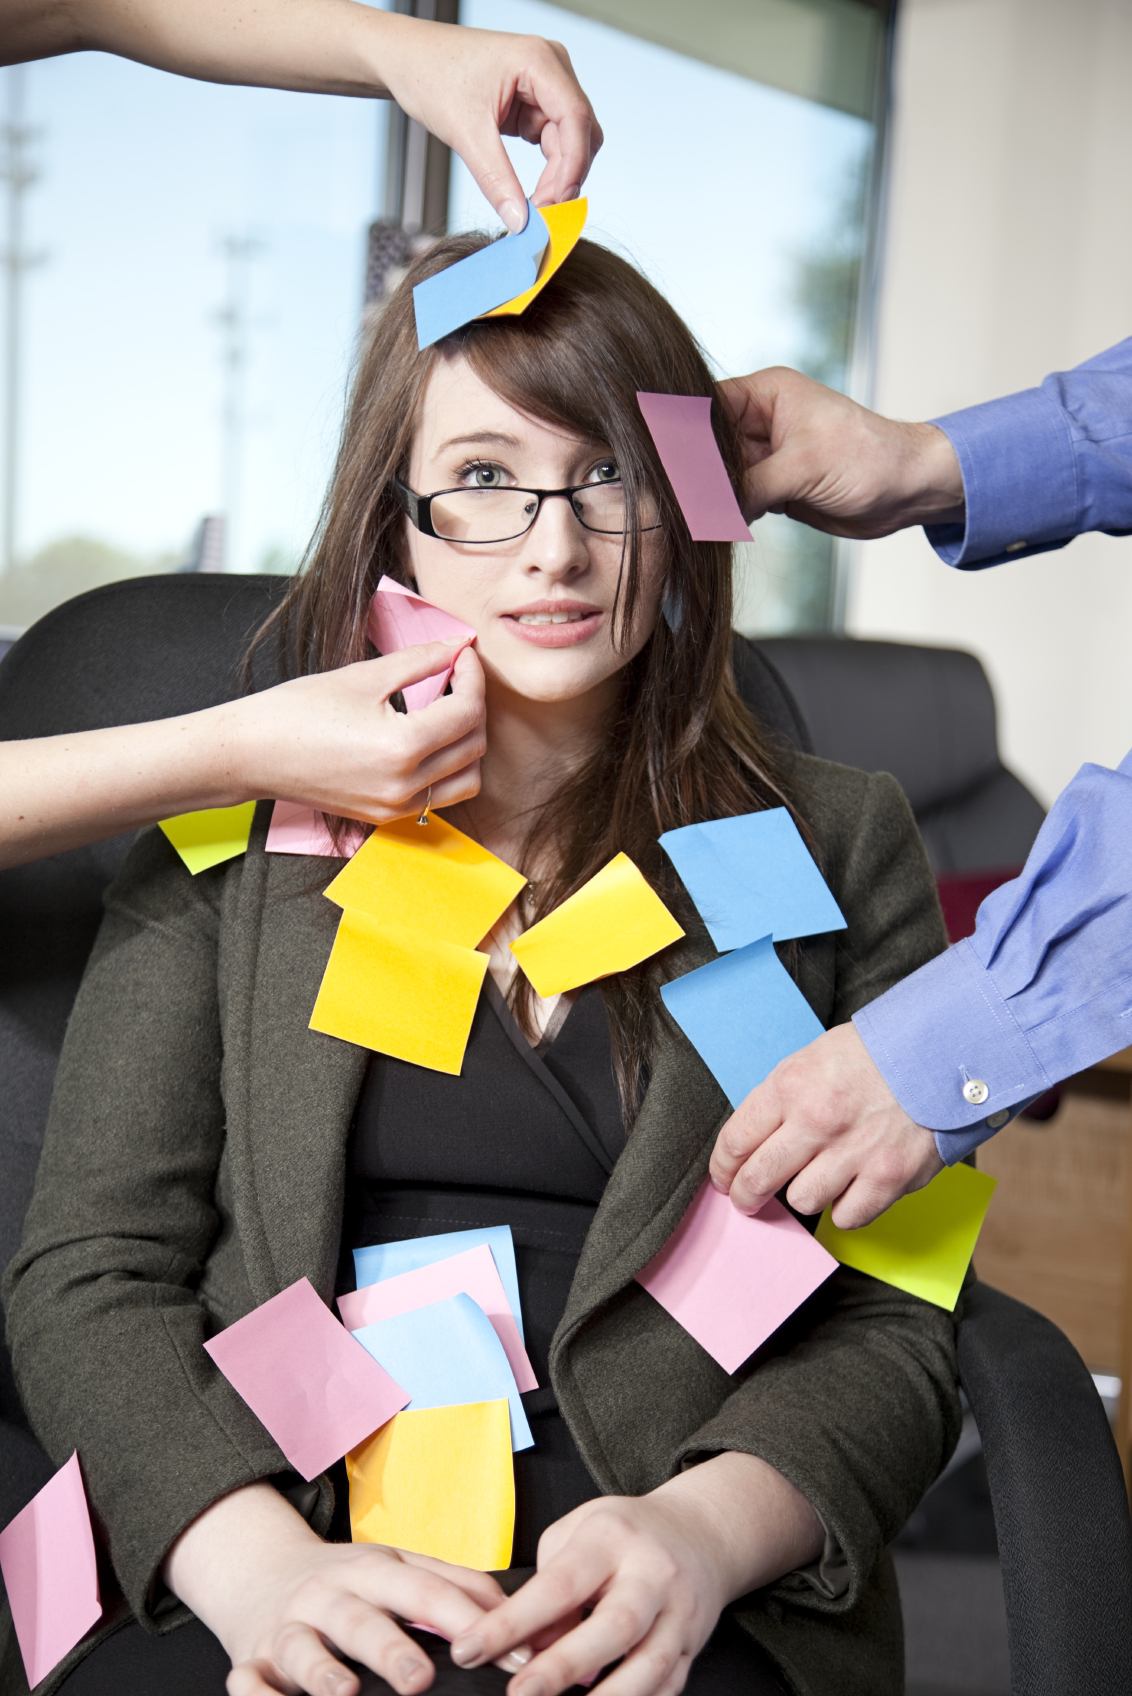 Woman-with-post-it-notes